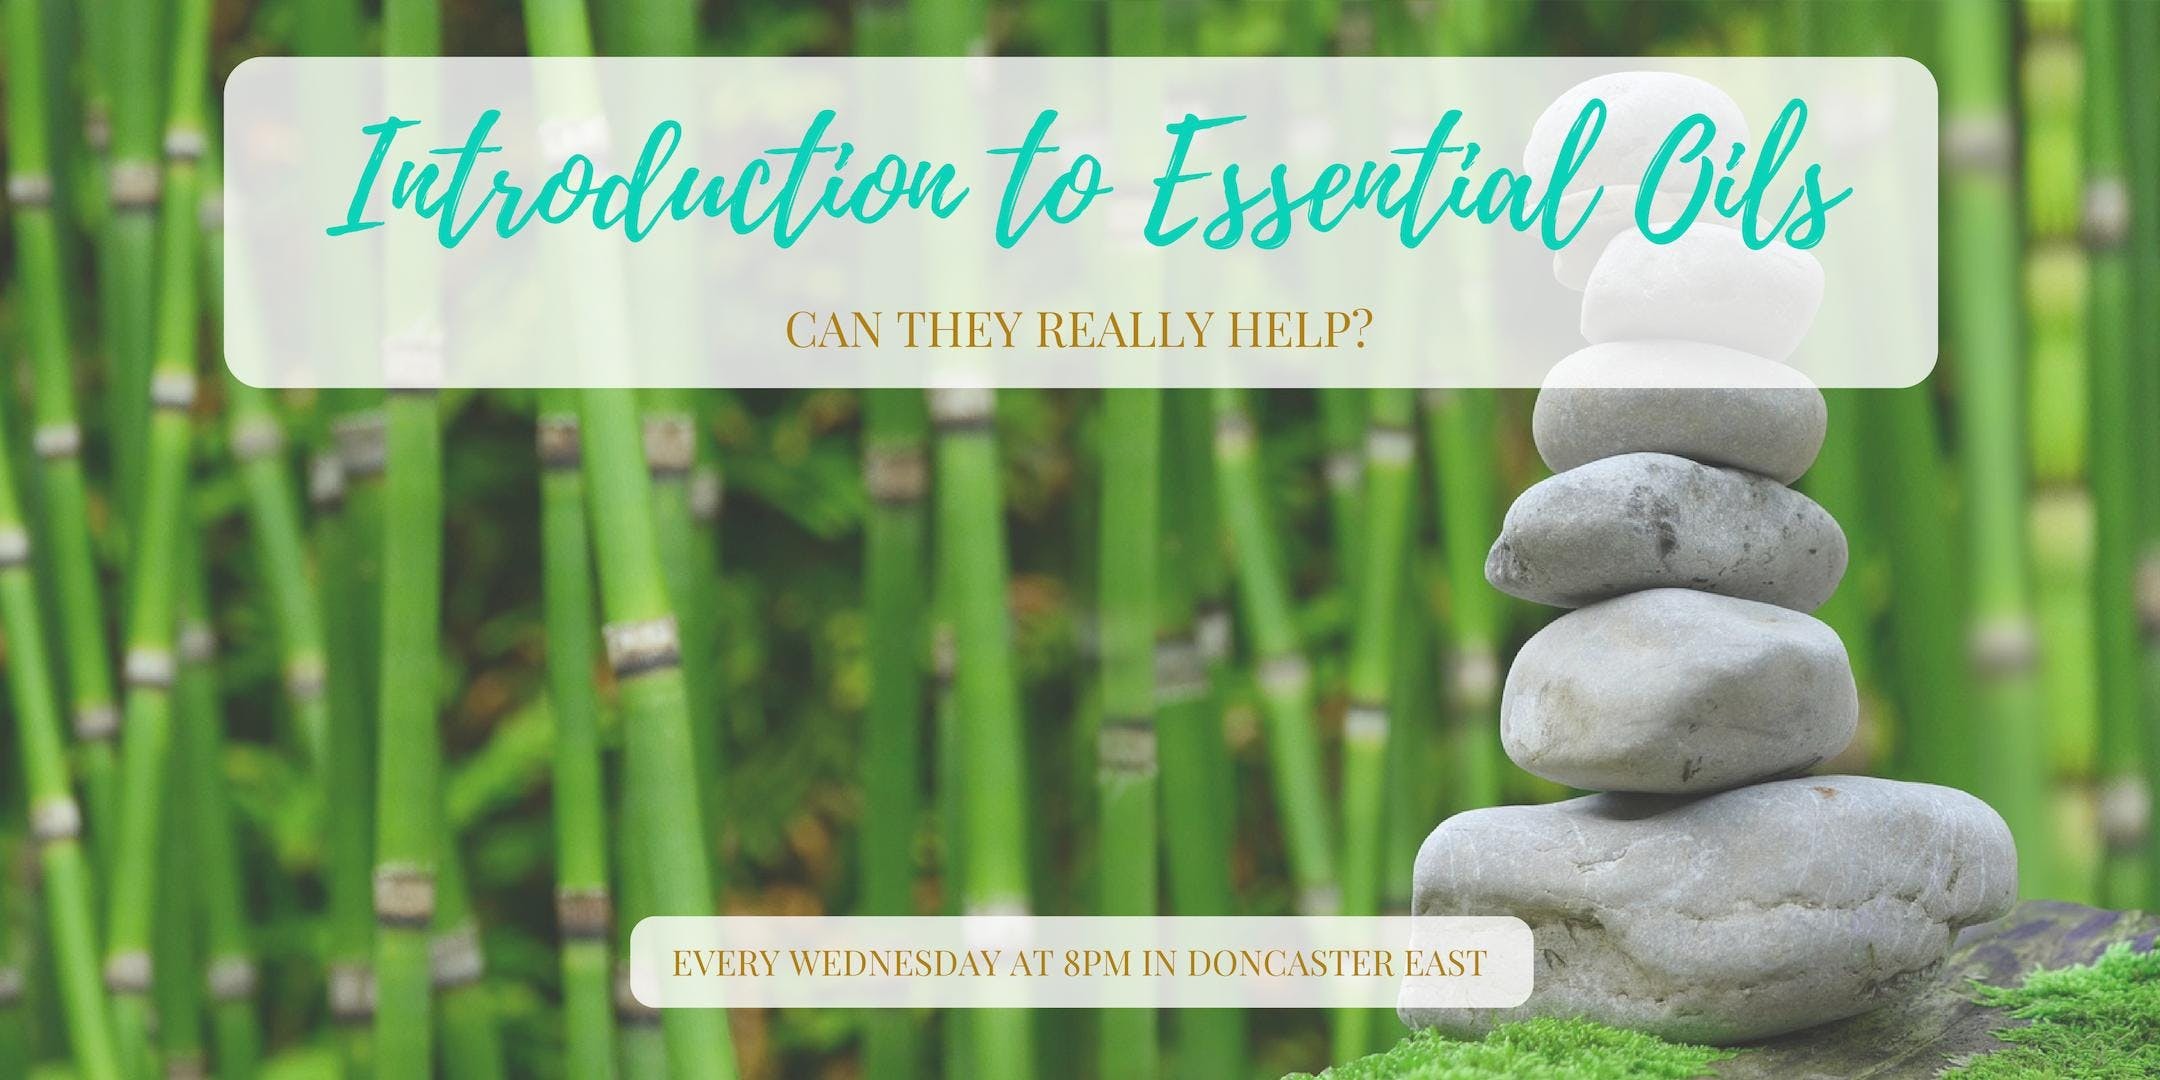 Introduction to Essential Oils - can they rea